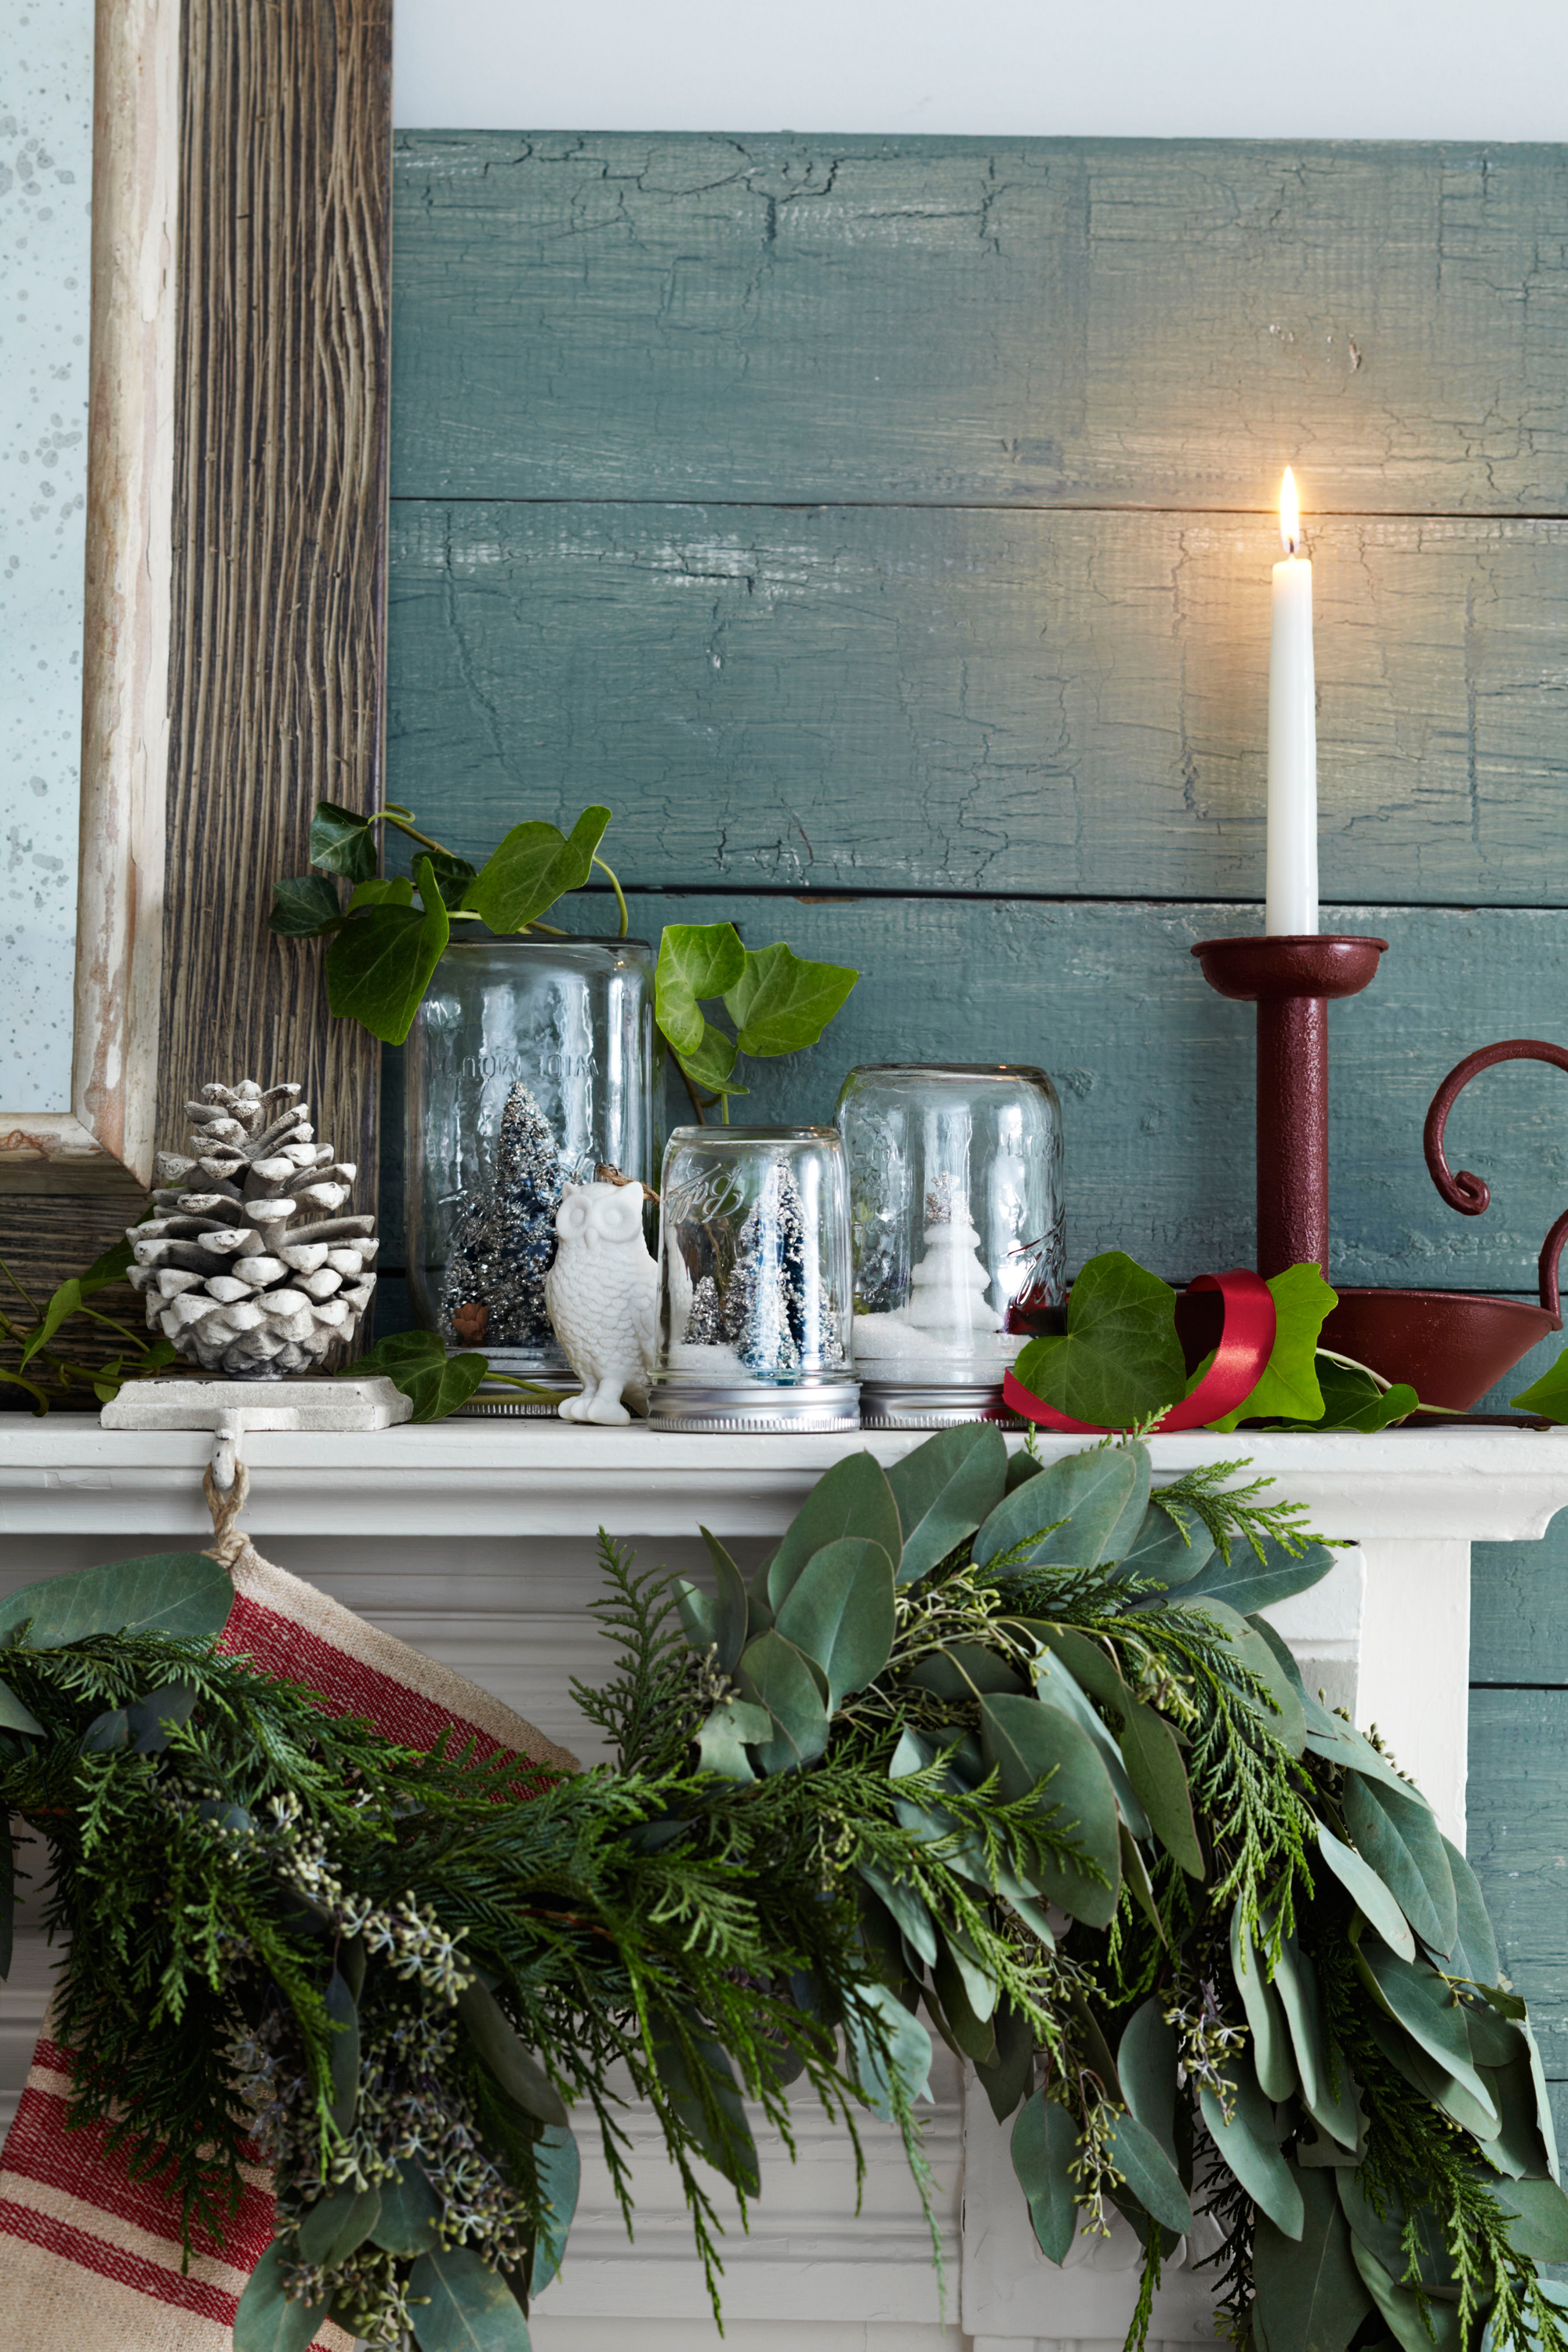 Holiday lodge rustic woodland decorations youtube - Holiday Lodge Rustic Woodland Decorations Youtube 23